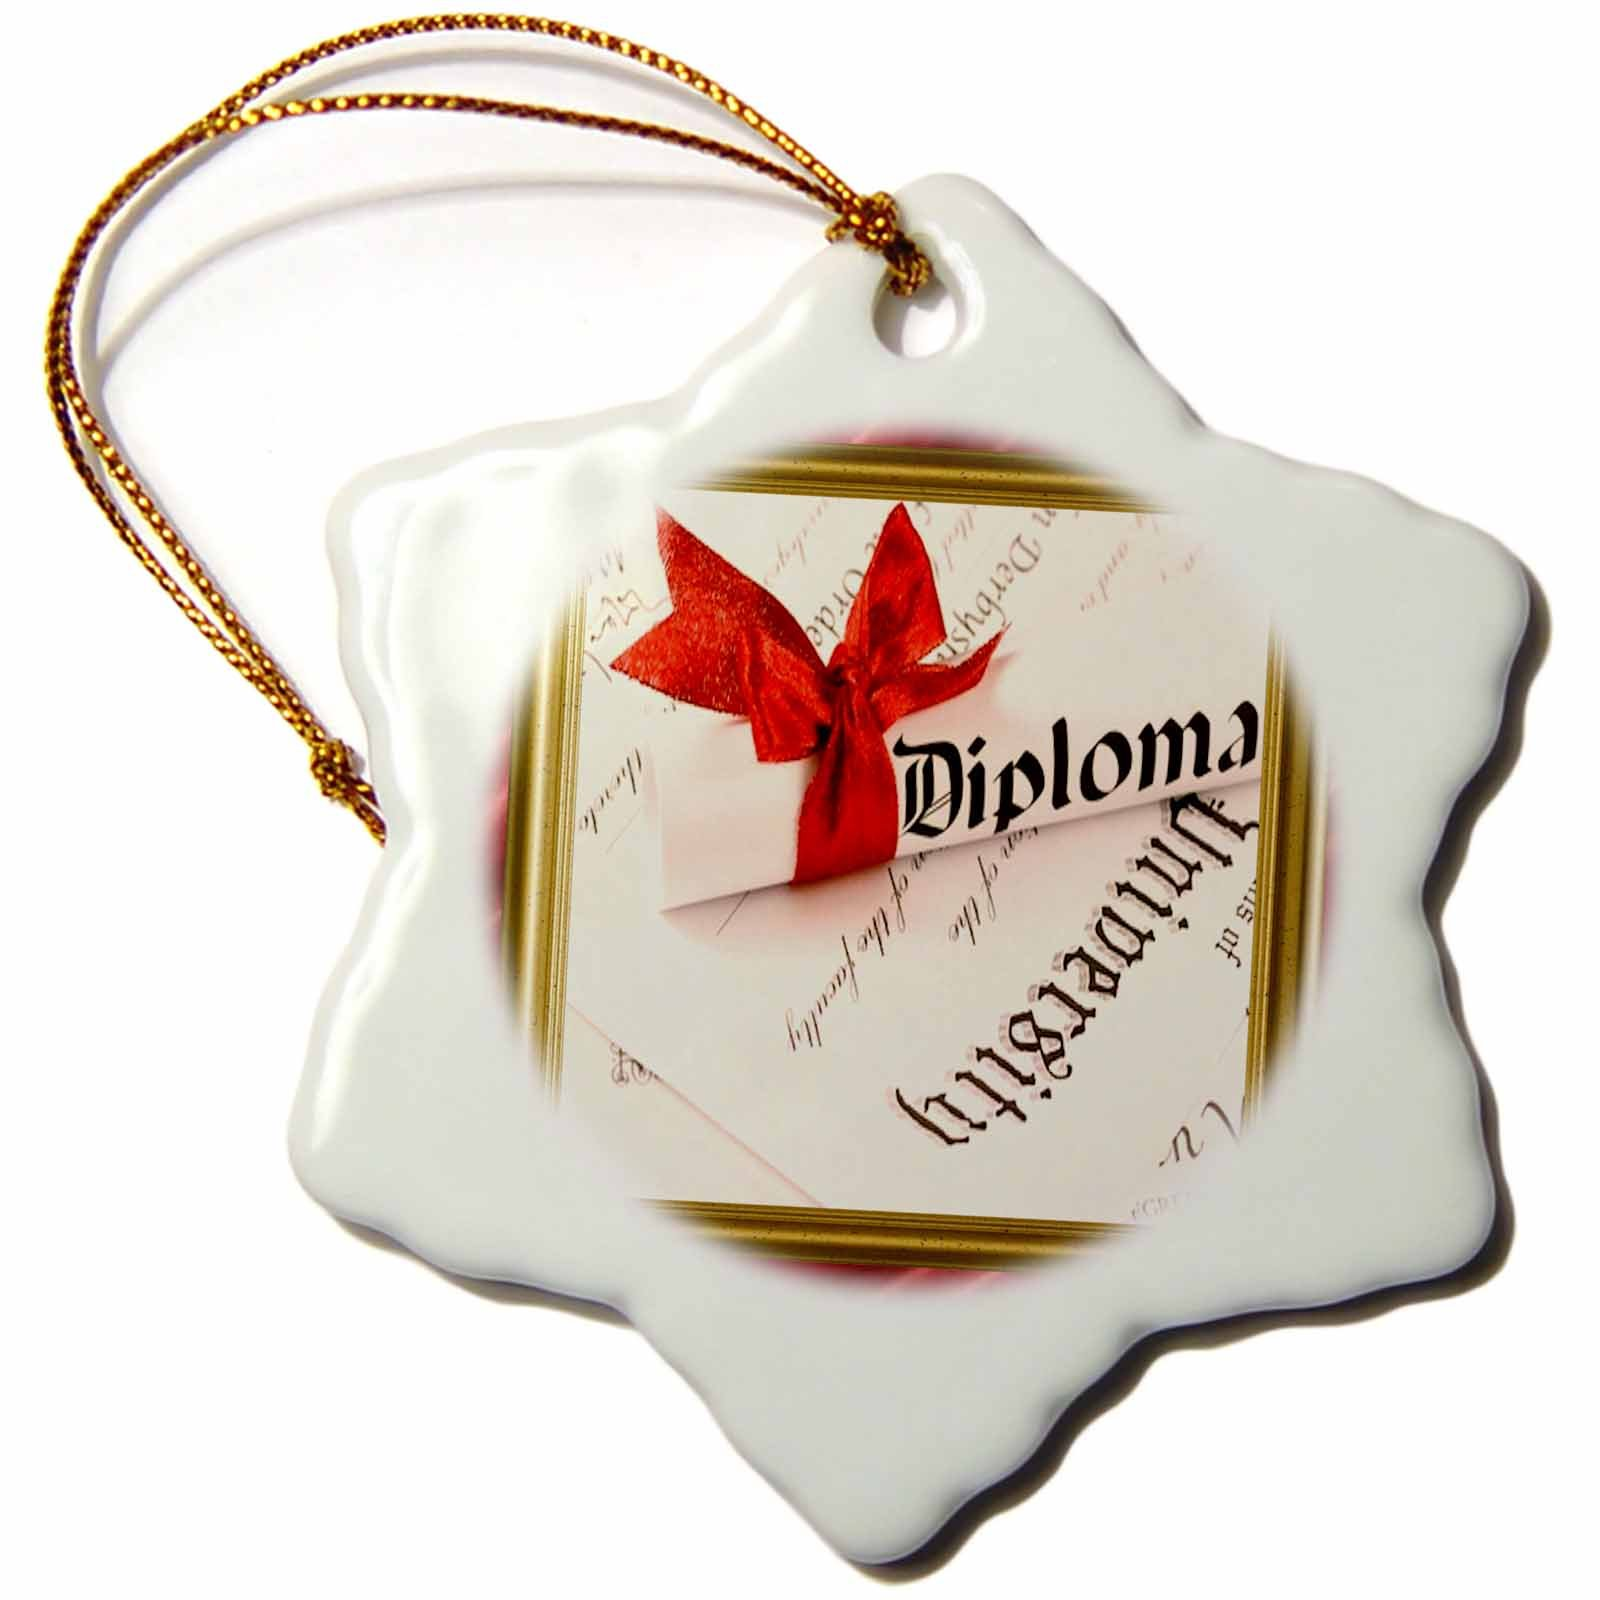 3dRose orn_21249_1 College Diploma Porcelain Snowflake Ornament, 3-Inch